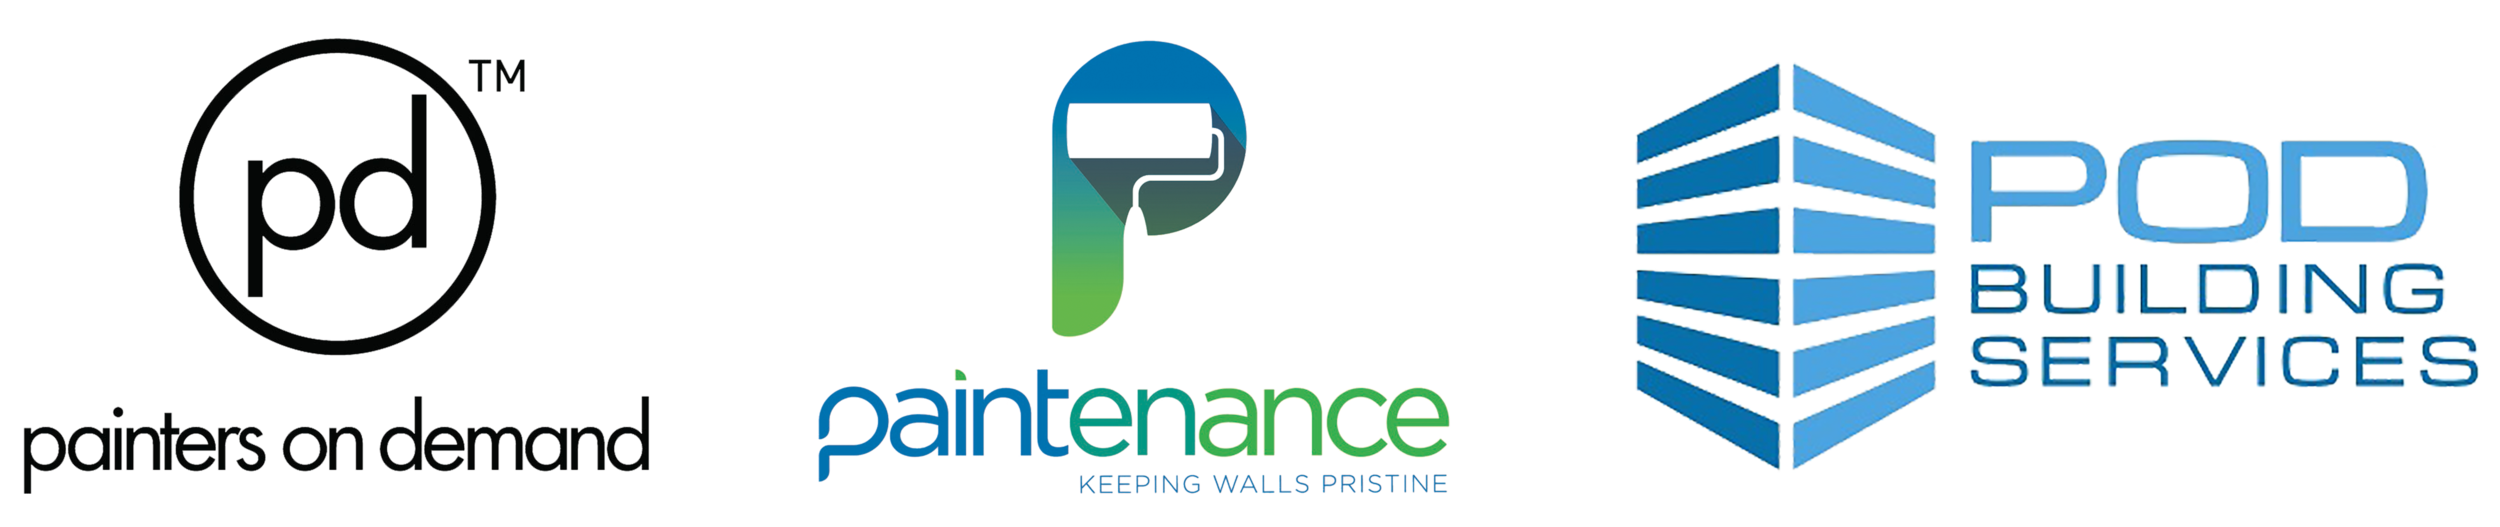 website paintenance and building services.png